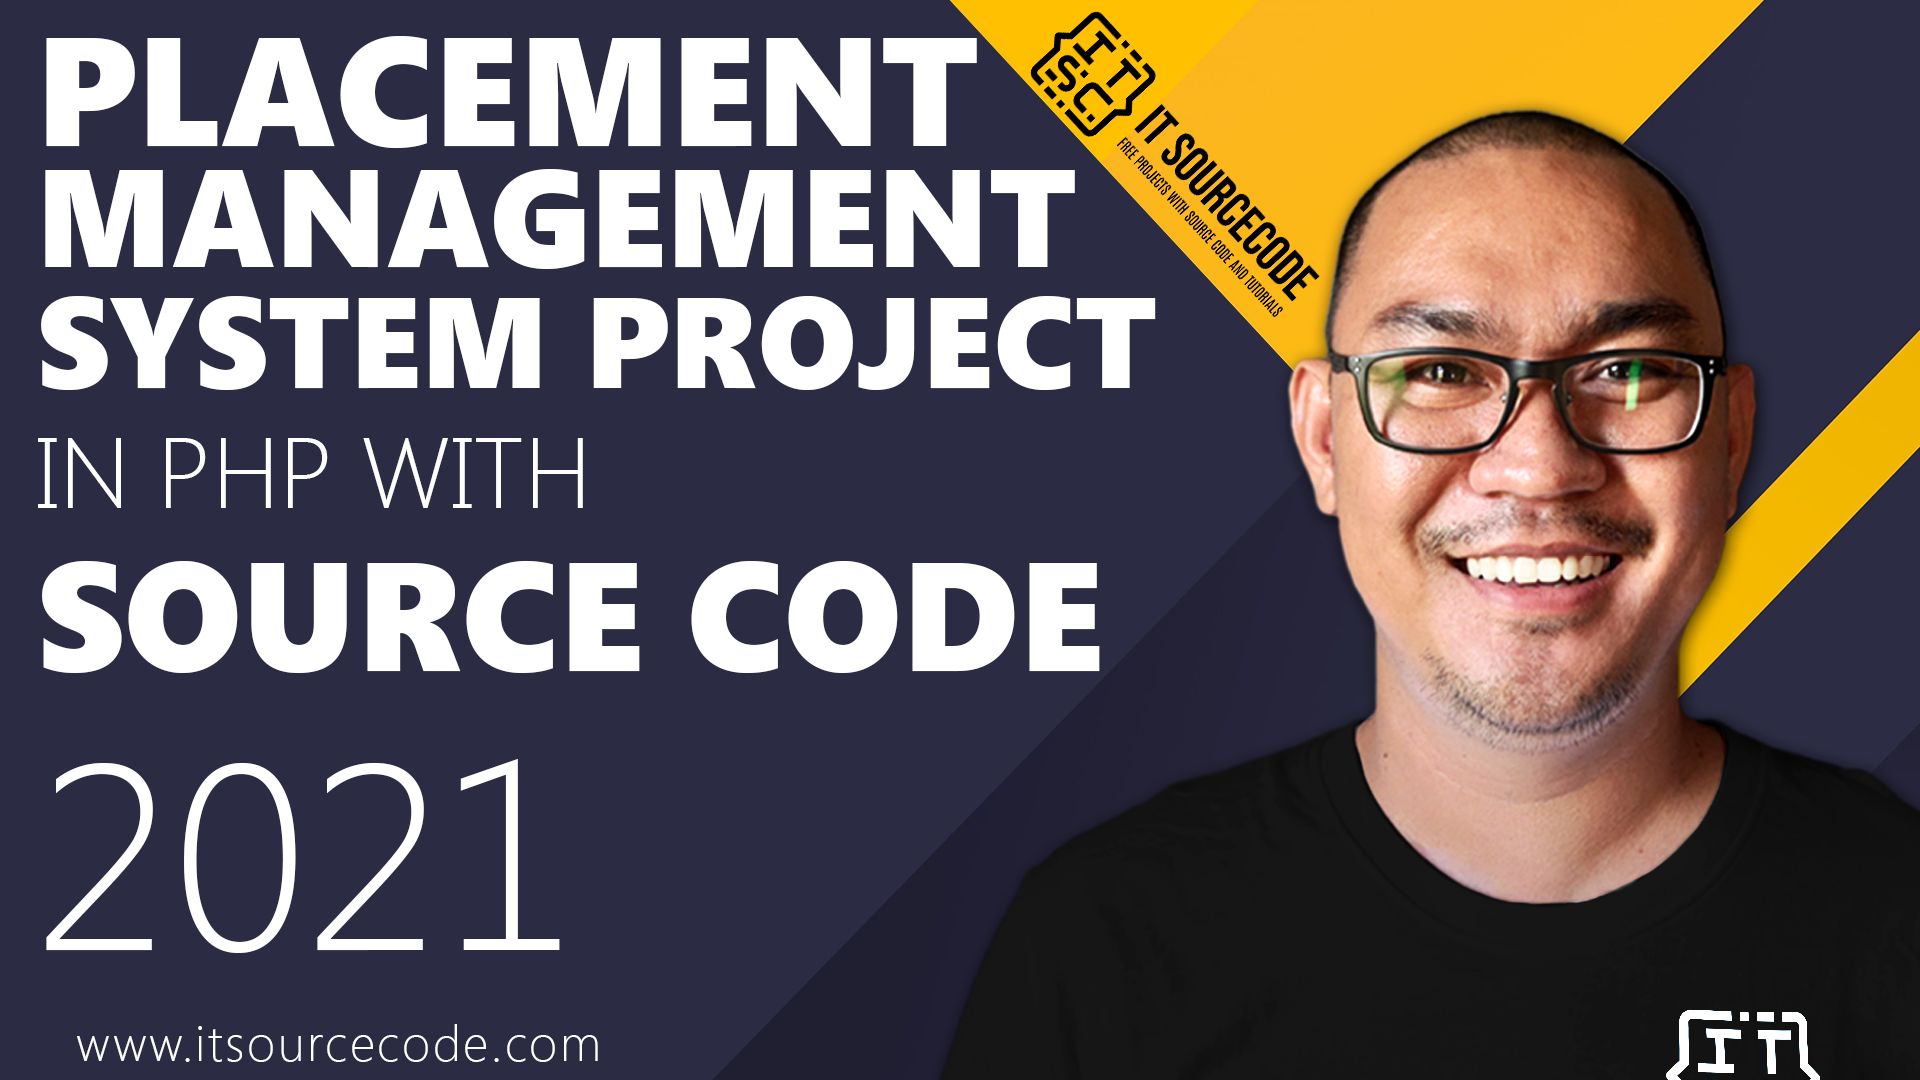 Placement Management System Project In PHP With Source Code